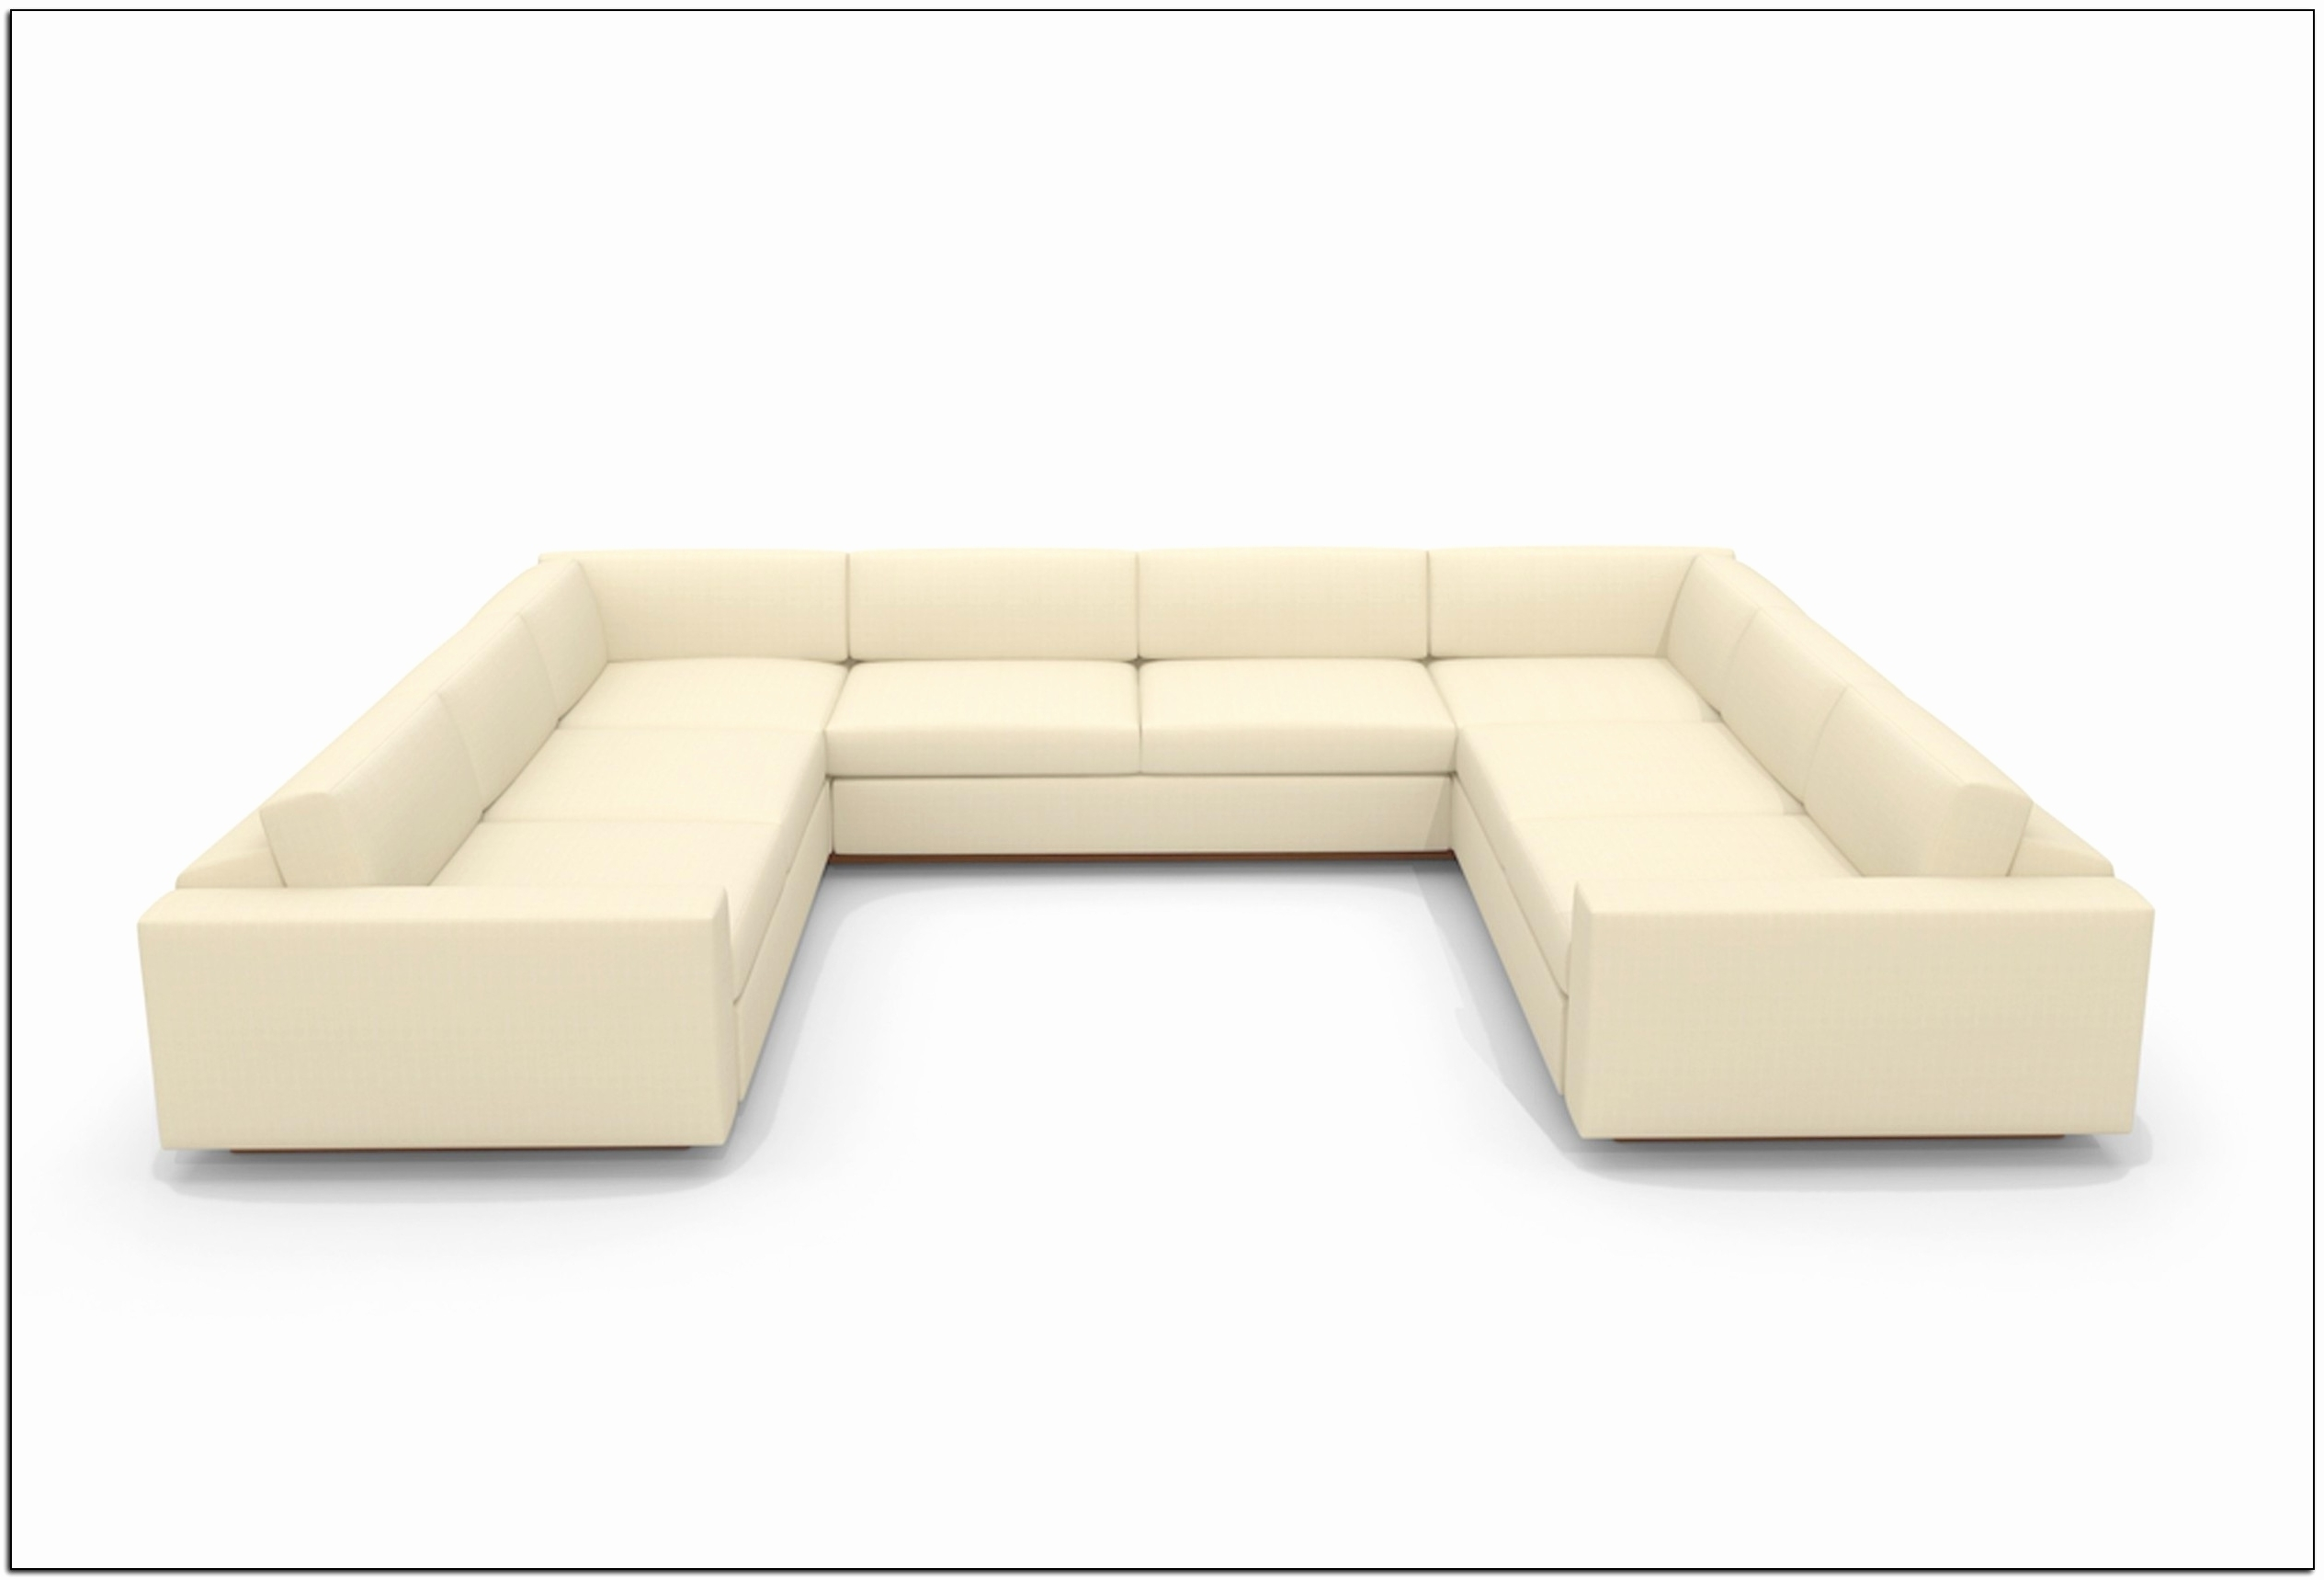 U Shaped Leather Sectional Sofas Pertaining To 2018 Inspirational Large U Shaped Sectional Sofa 2018 – Couches And (View 11 of 15)